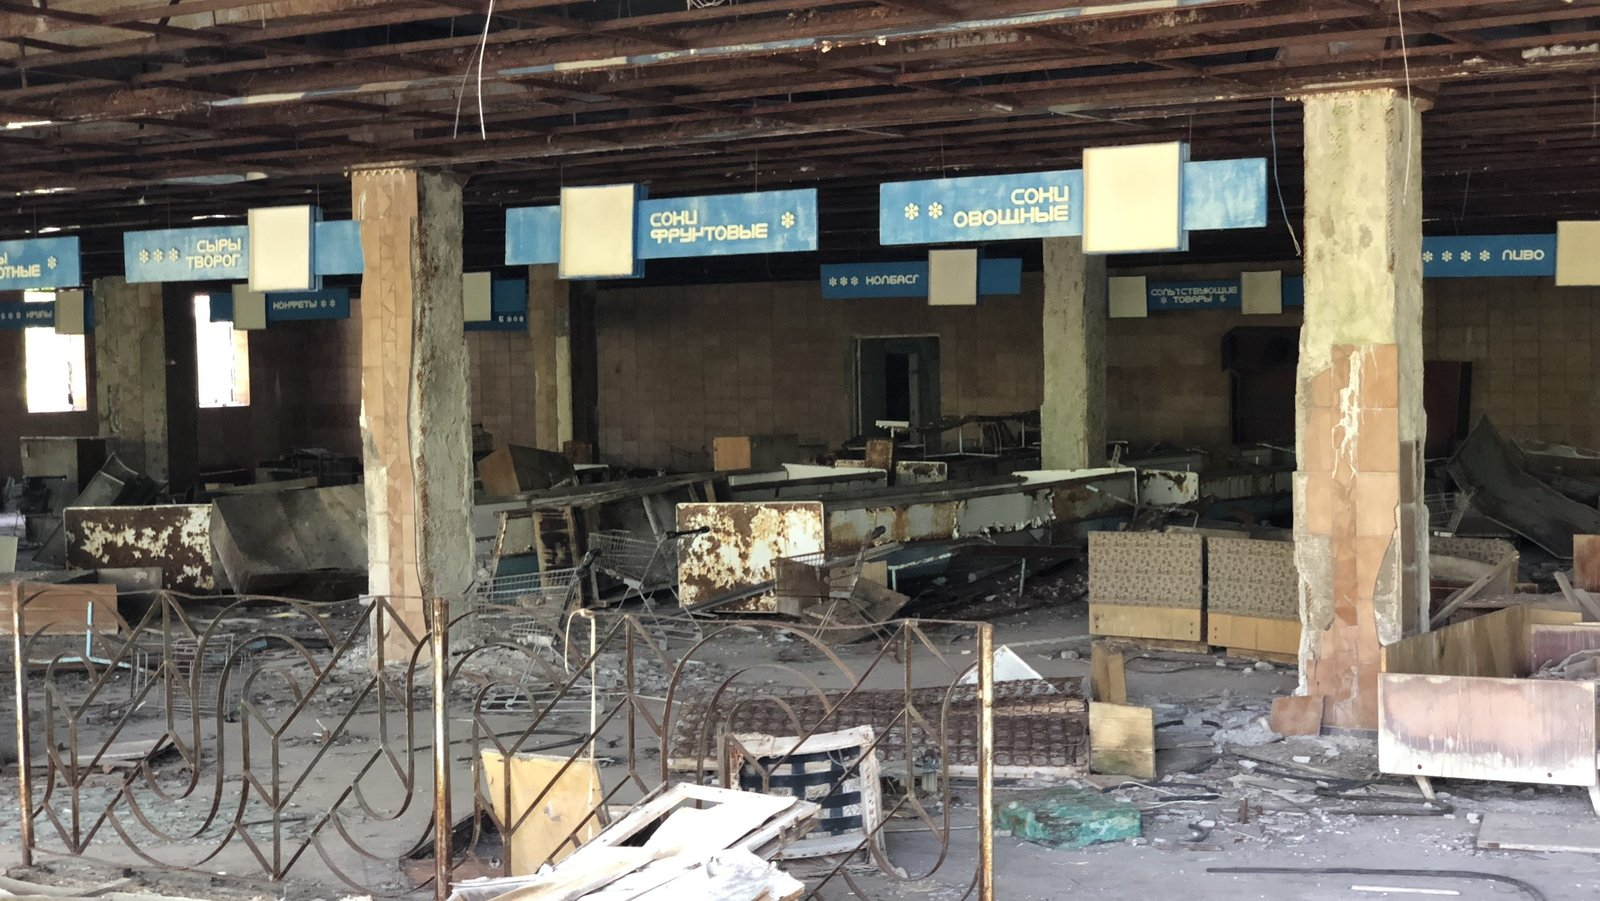 Image - The checkouts, shelves and trolleys still visible in the abandoned supermarket of Pripyat